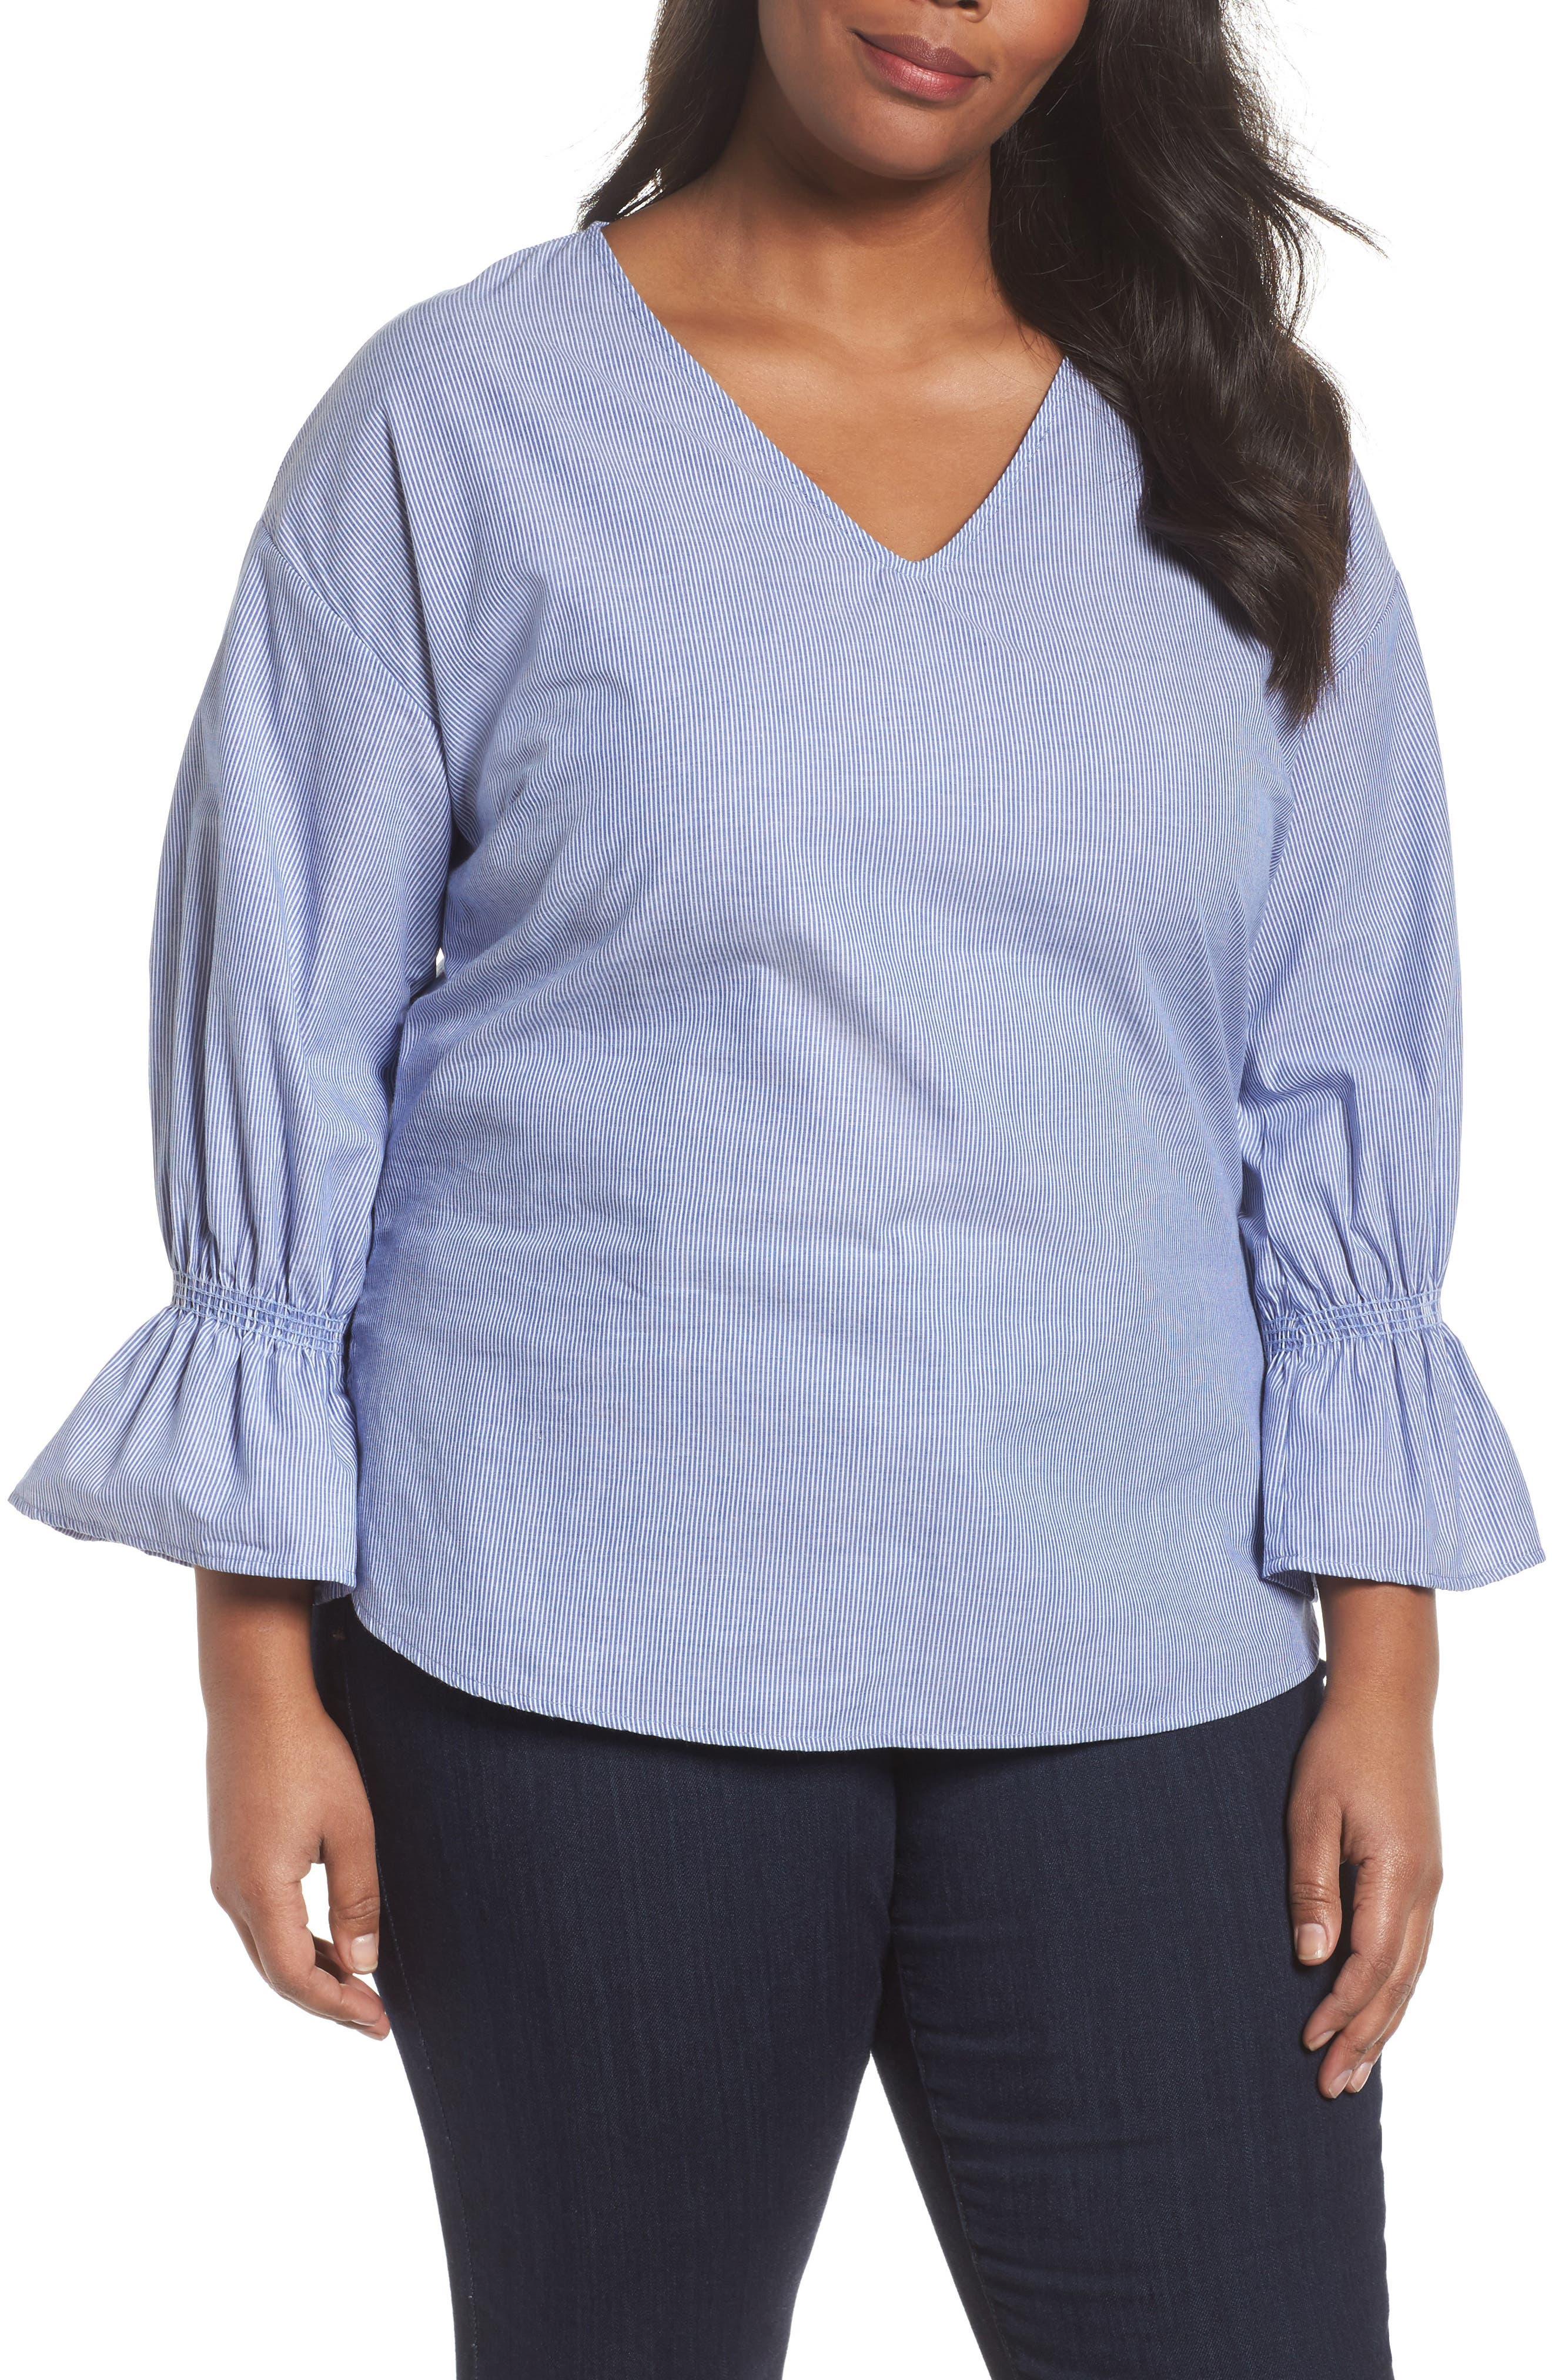 Pinstripe Bell Cuff Top,                             Main thumbnail 1, color,                             Blue Dark- Ivory Stripe